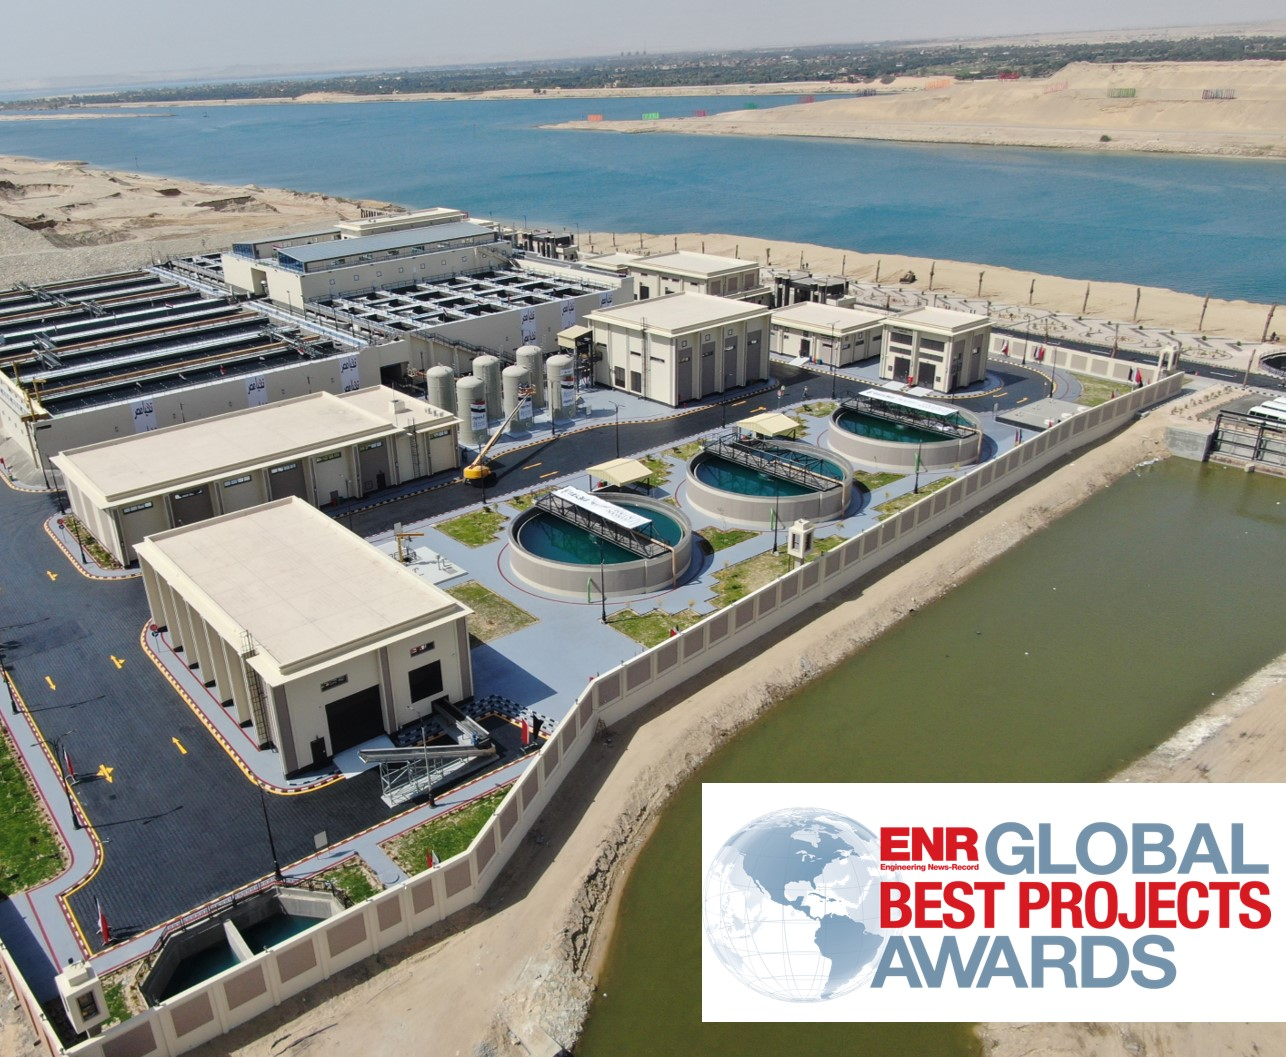 Al Mahsamma plant awarded  the best water/wastewater project  by Engineering News-Record (ENR)